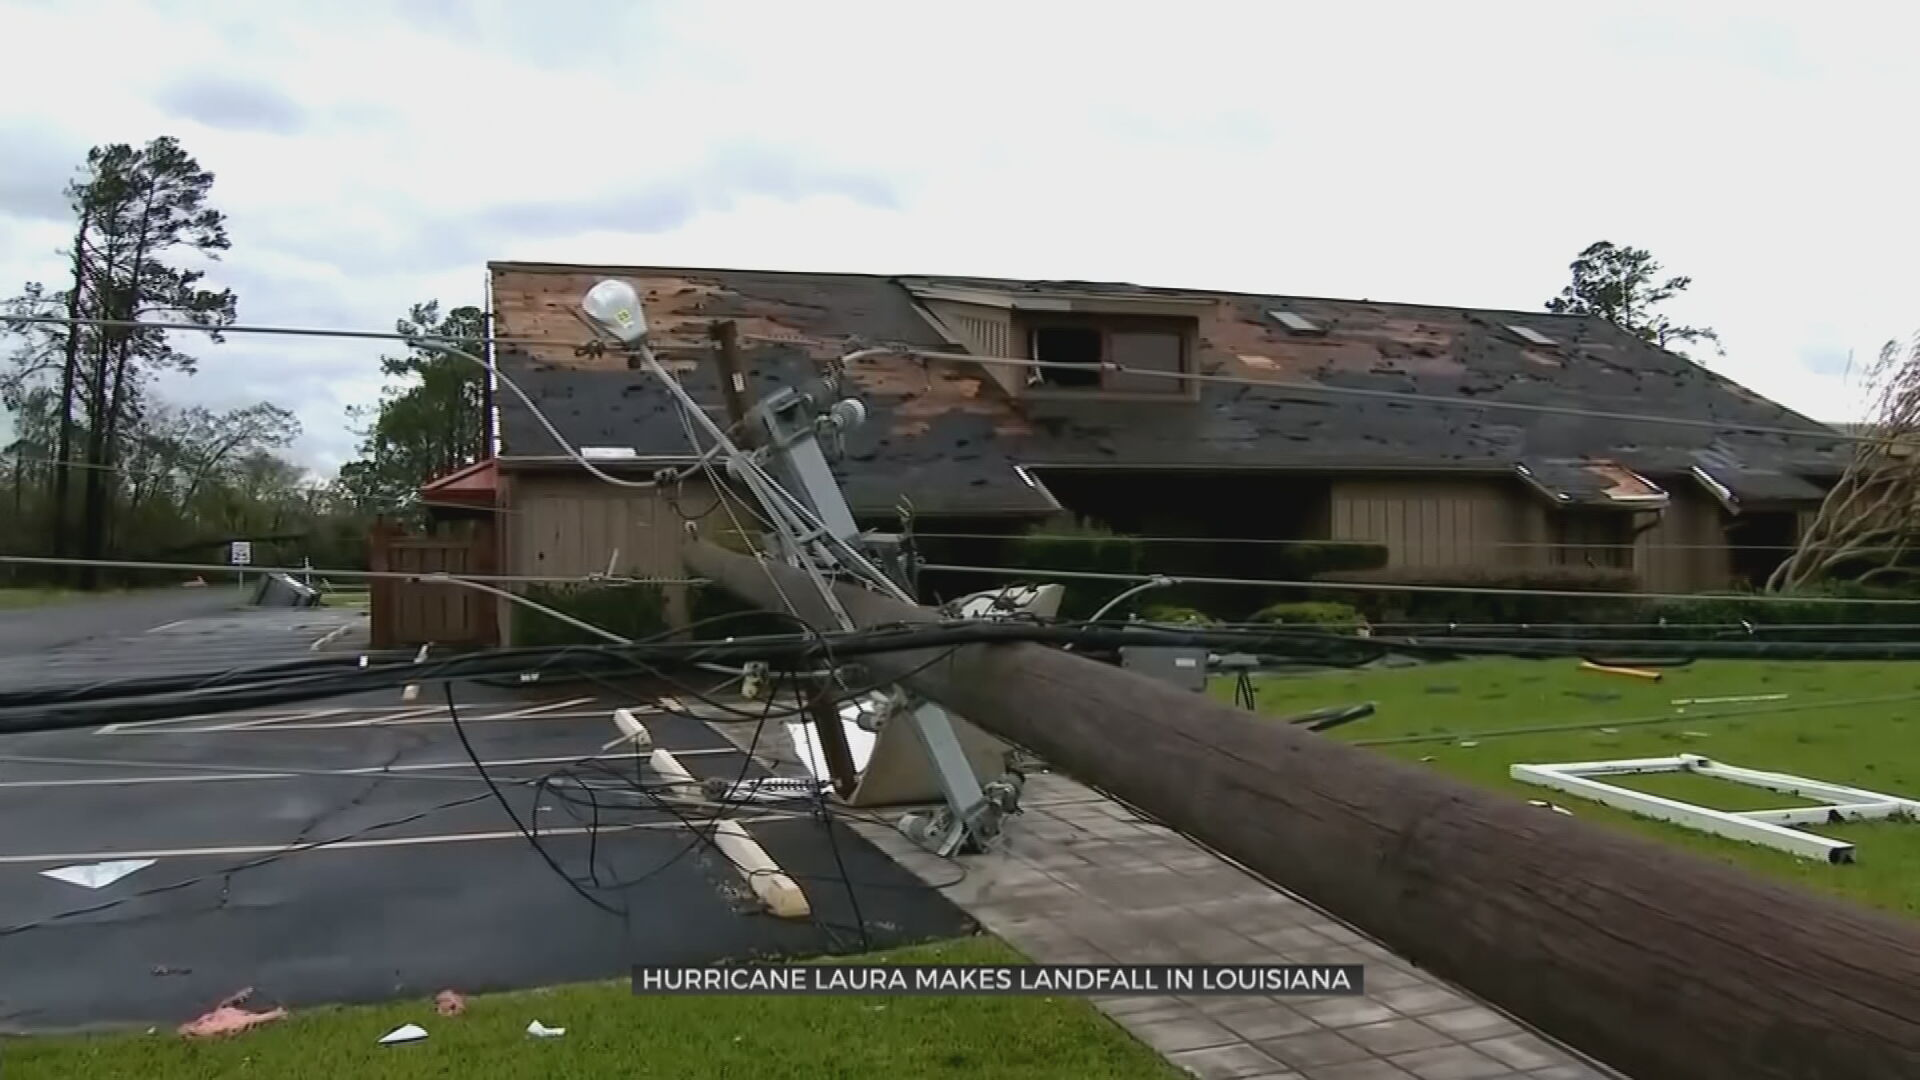 As Laura Weakens To Tropical Storm, Tulsa First Responders Aid Relief Efforts